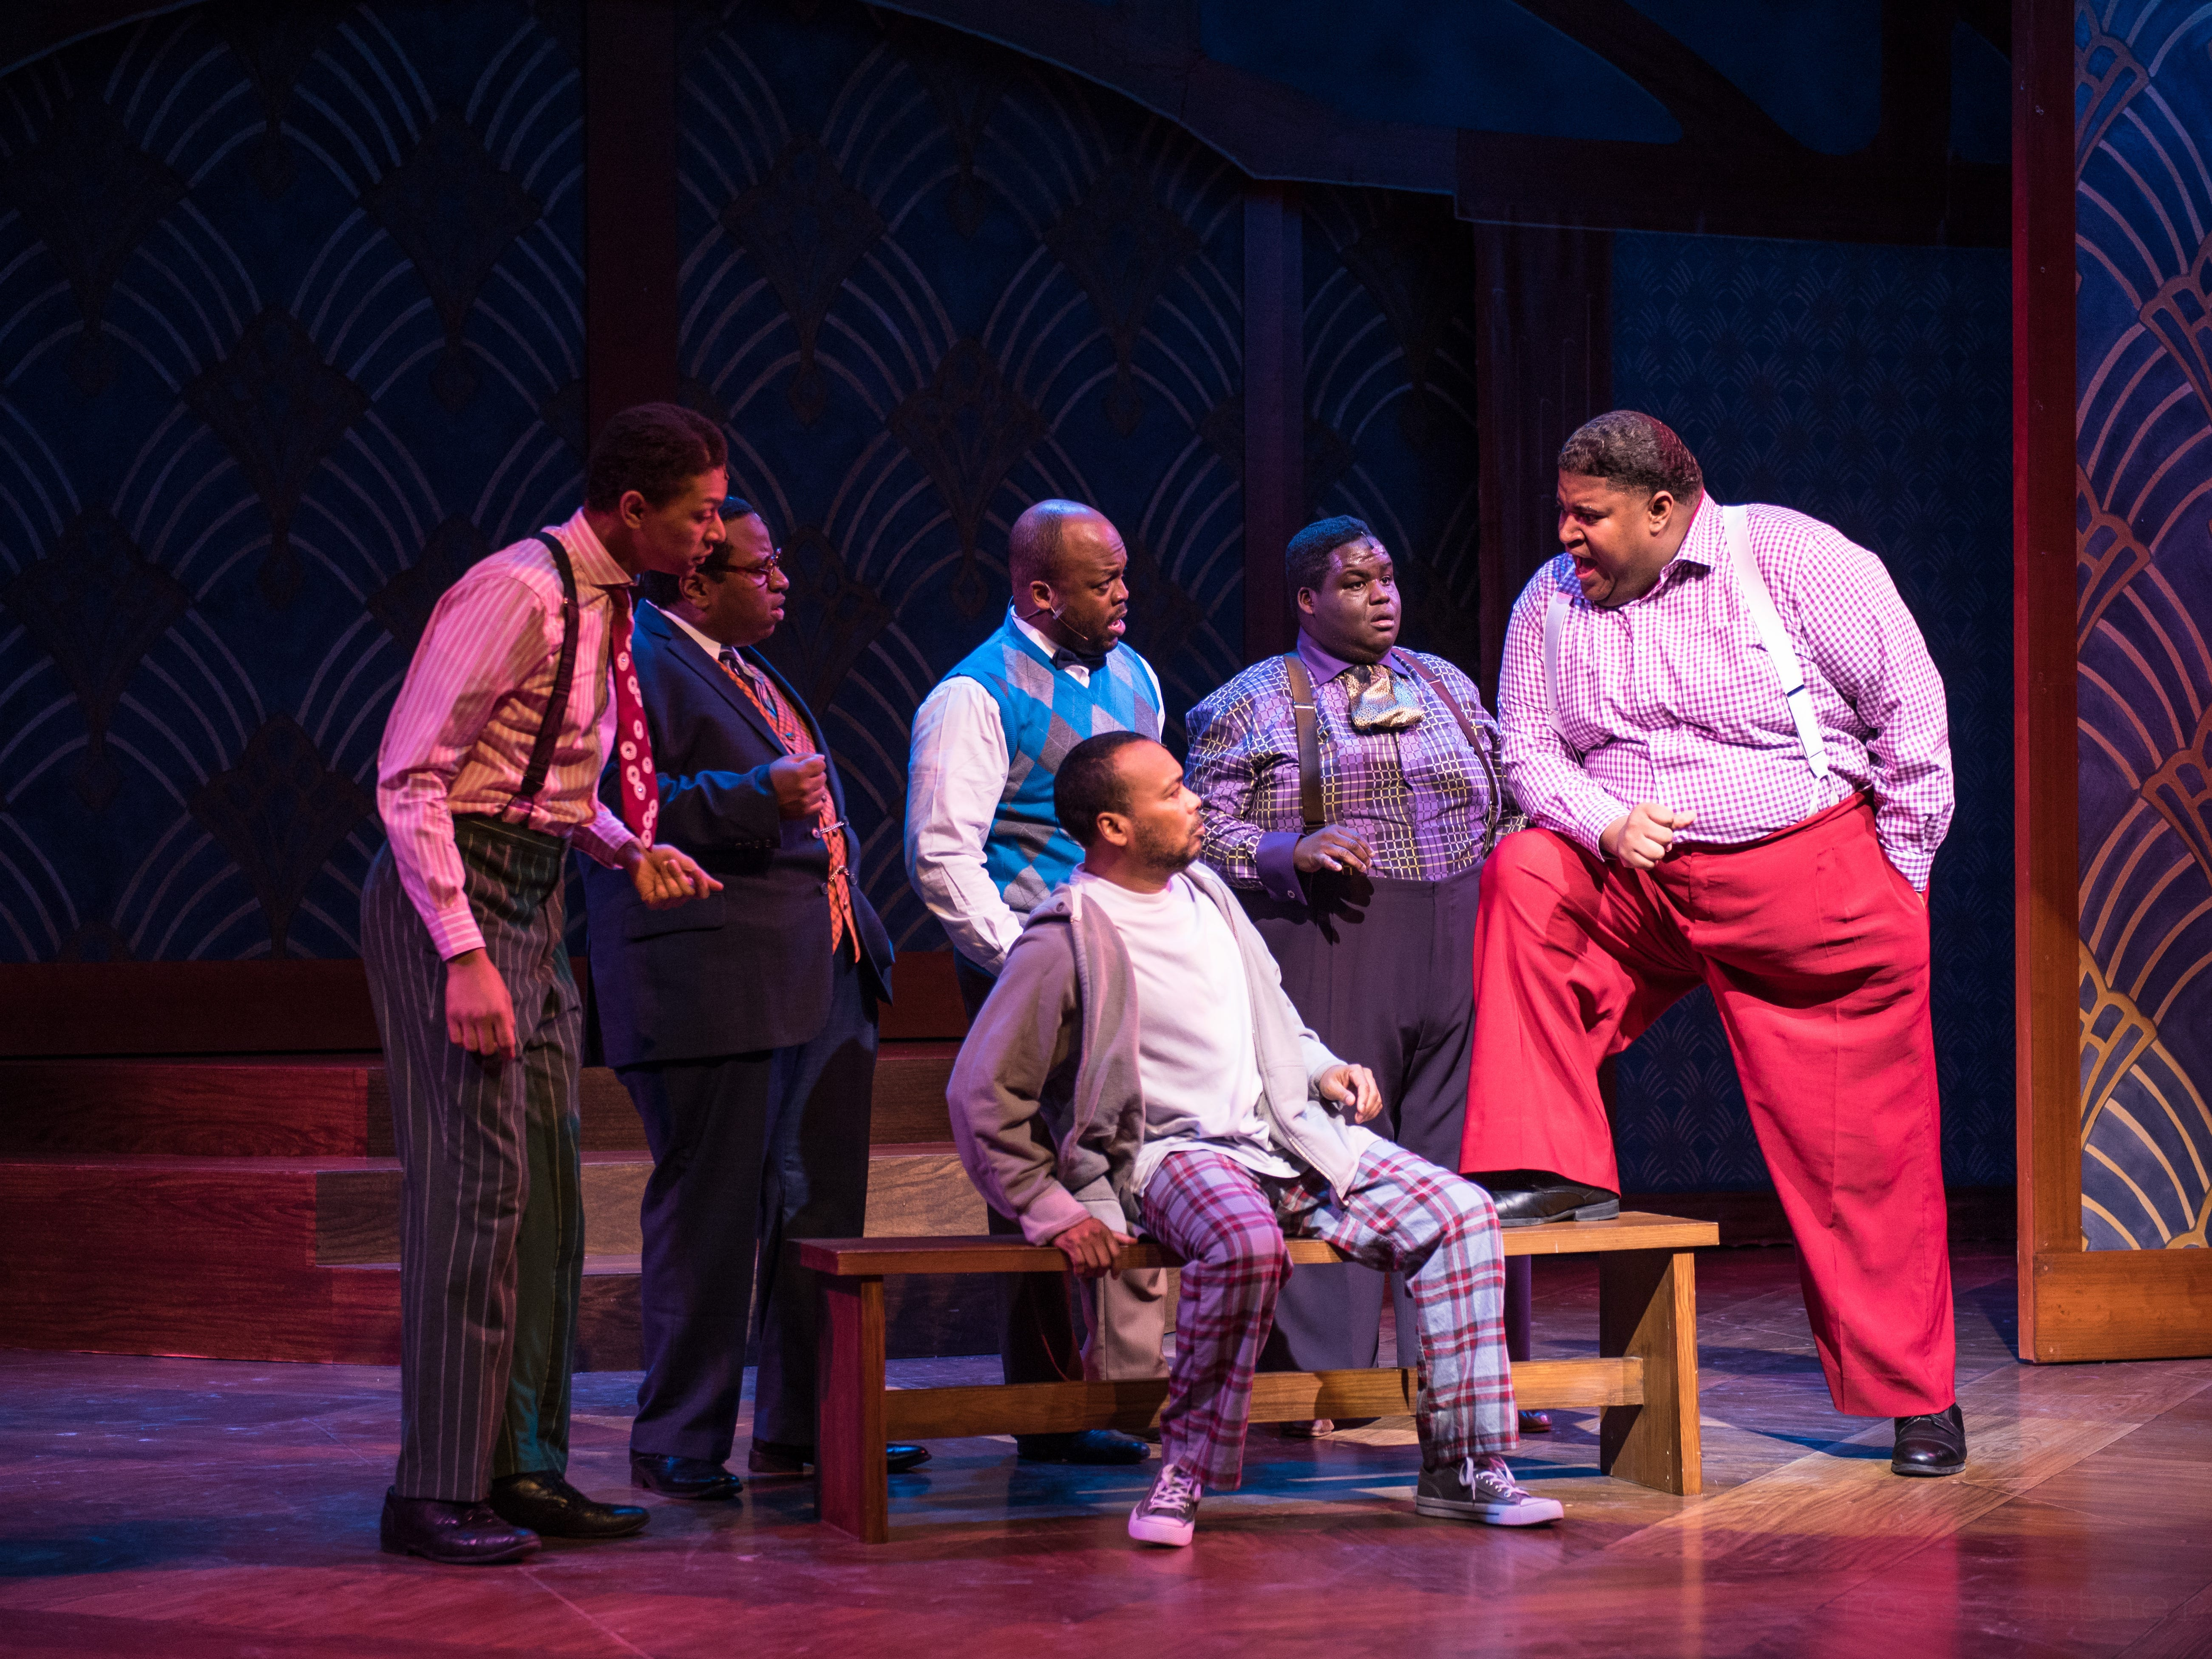 """Big Moe (Lorenzo Rush Jr., right) makes a point to Nomax (Gavin Lawrence, on bench) in Skylight Music Theatre's production of """"Five Guys Named Moe,"""" as Eat Moe (Sean Anthony Jackson), Four-Eyed Moe (James Carrington), No Moe (Shawn Holmes) and Little Moe (Kevin James Sievert) look on."""